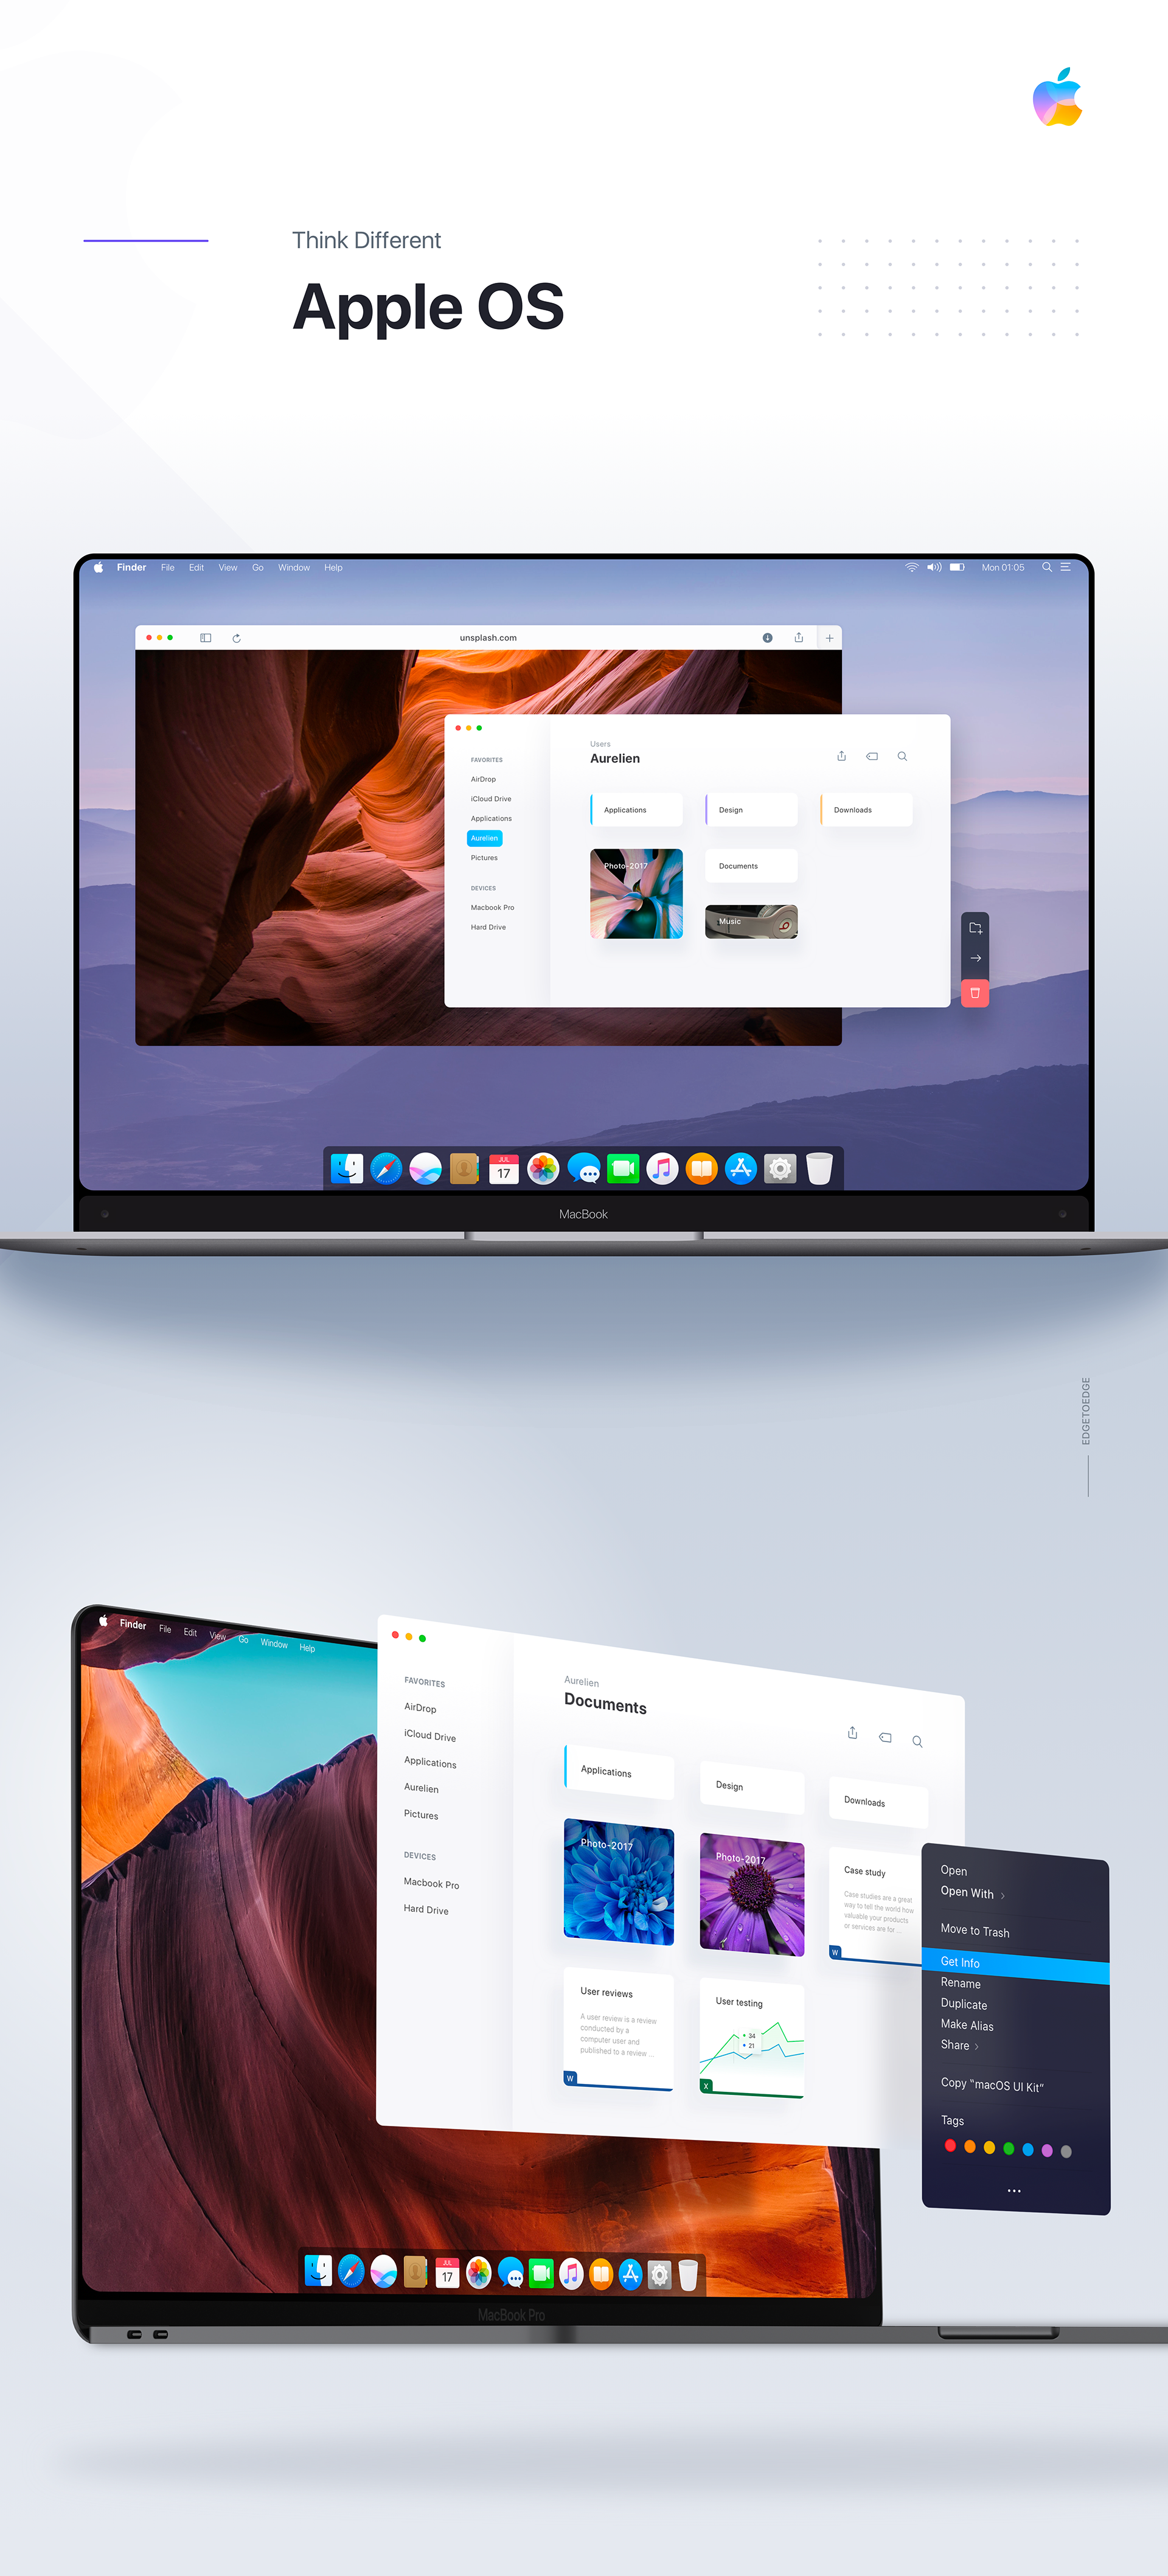 Redesigning Apple Os Macos 2020 With Edge To Edge Macbook Concept Apple Os App Design Inspiration Web Design Company